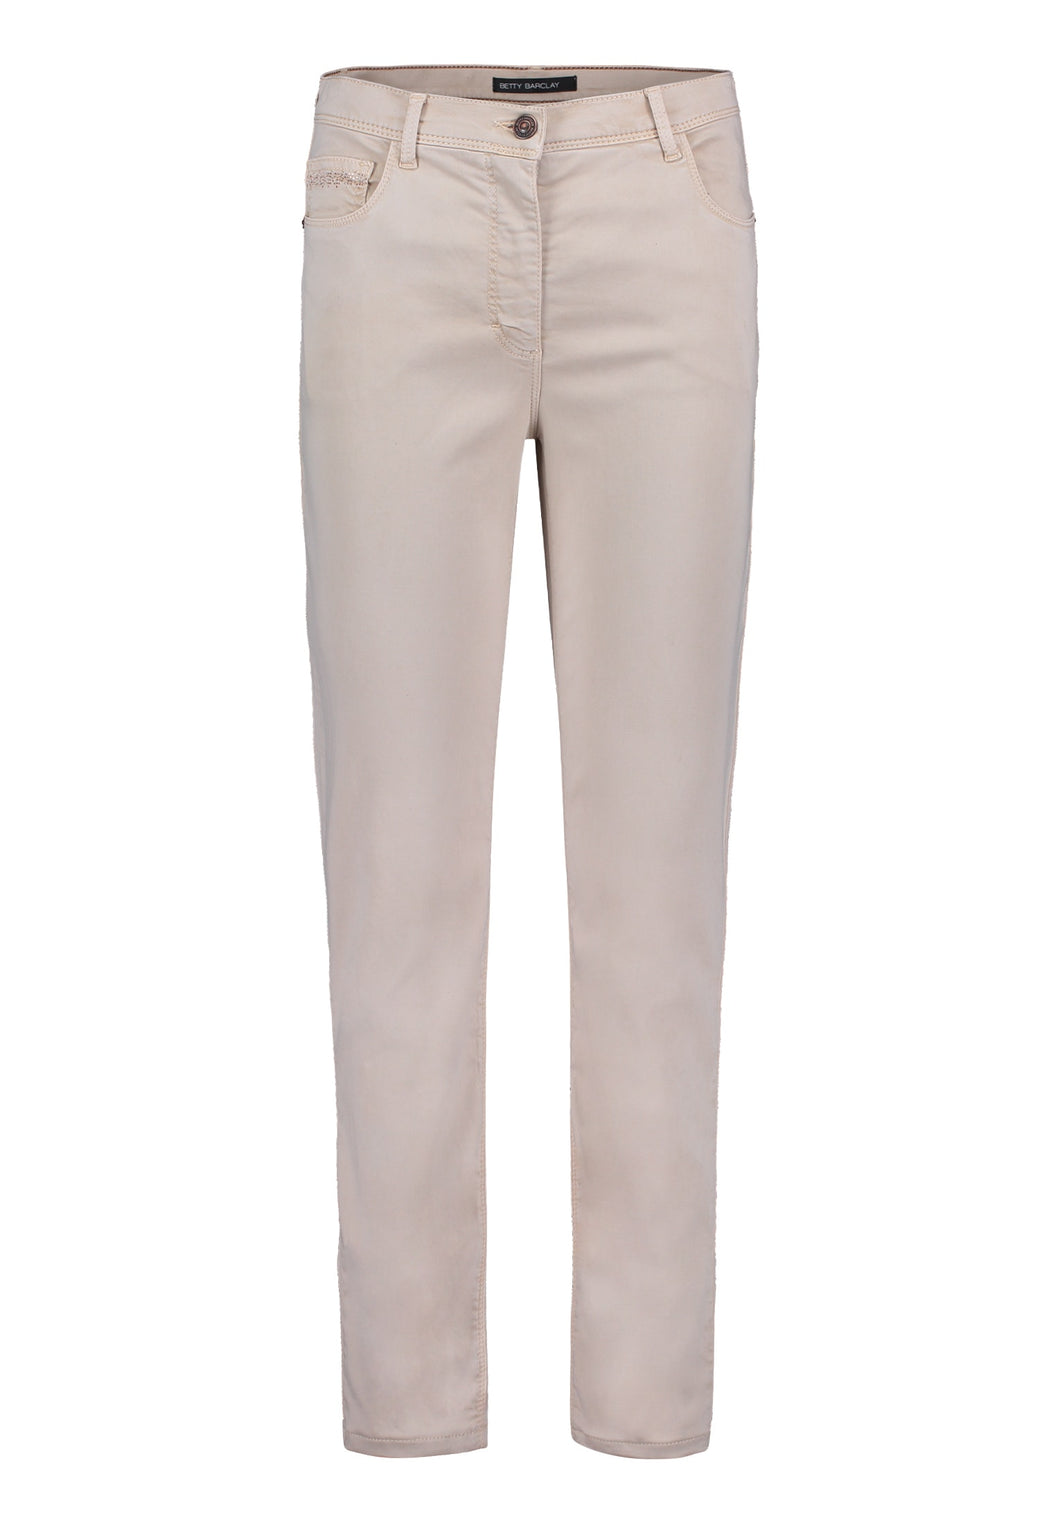 Betty Barclay Sparkle Jeans - 6033/1070 - Beige